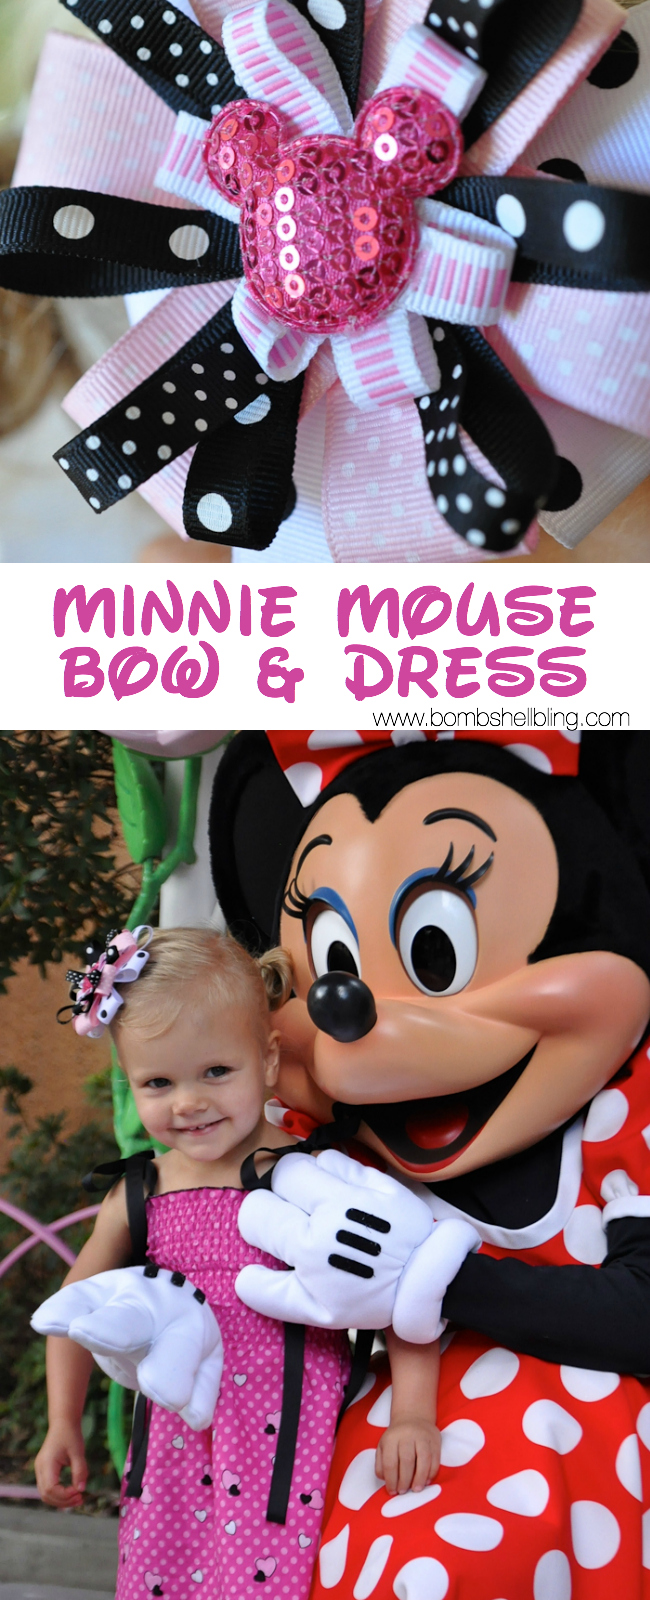 Minnie Mouse Bow & Dress Tutorial